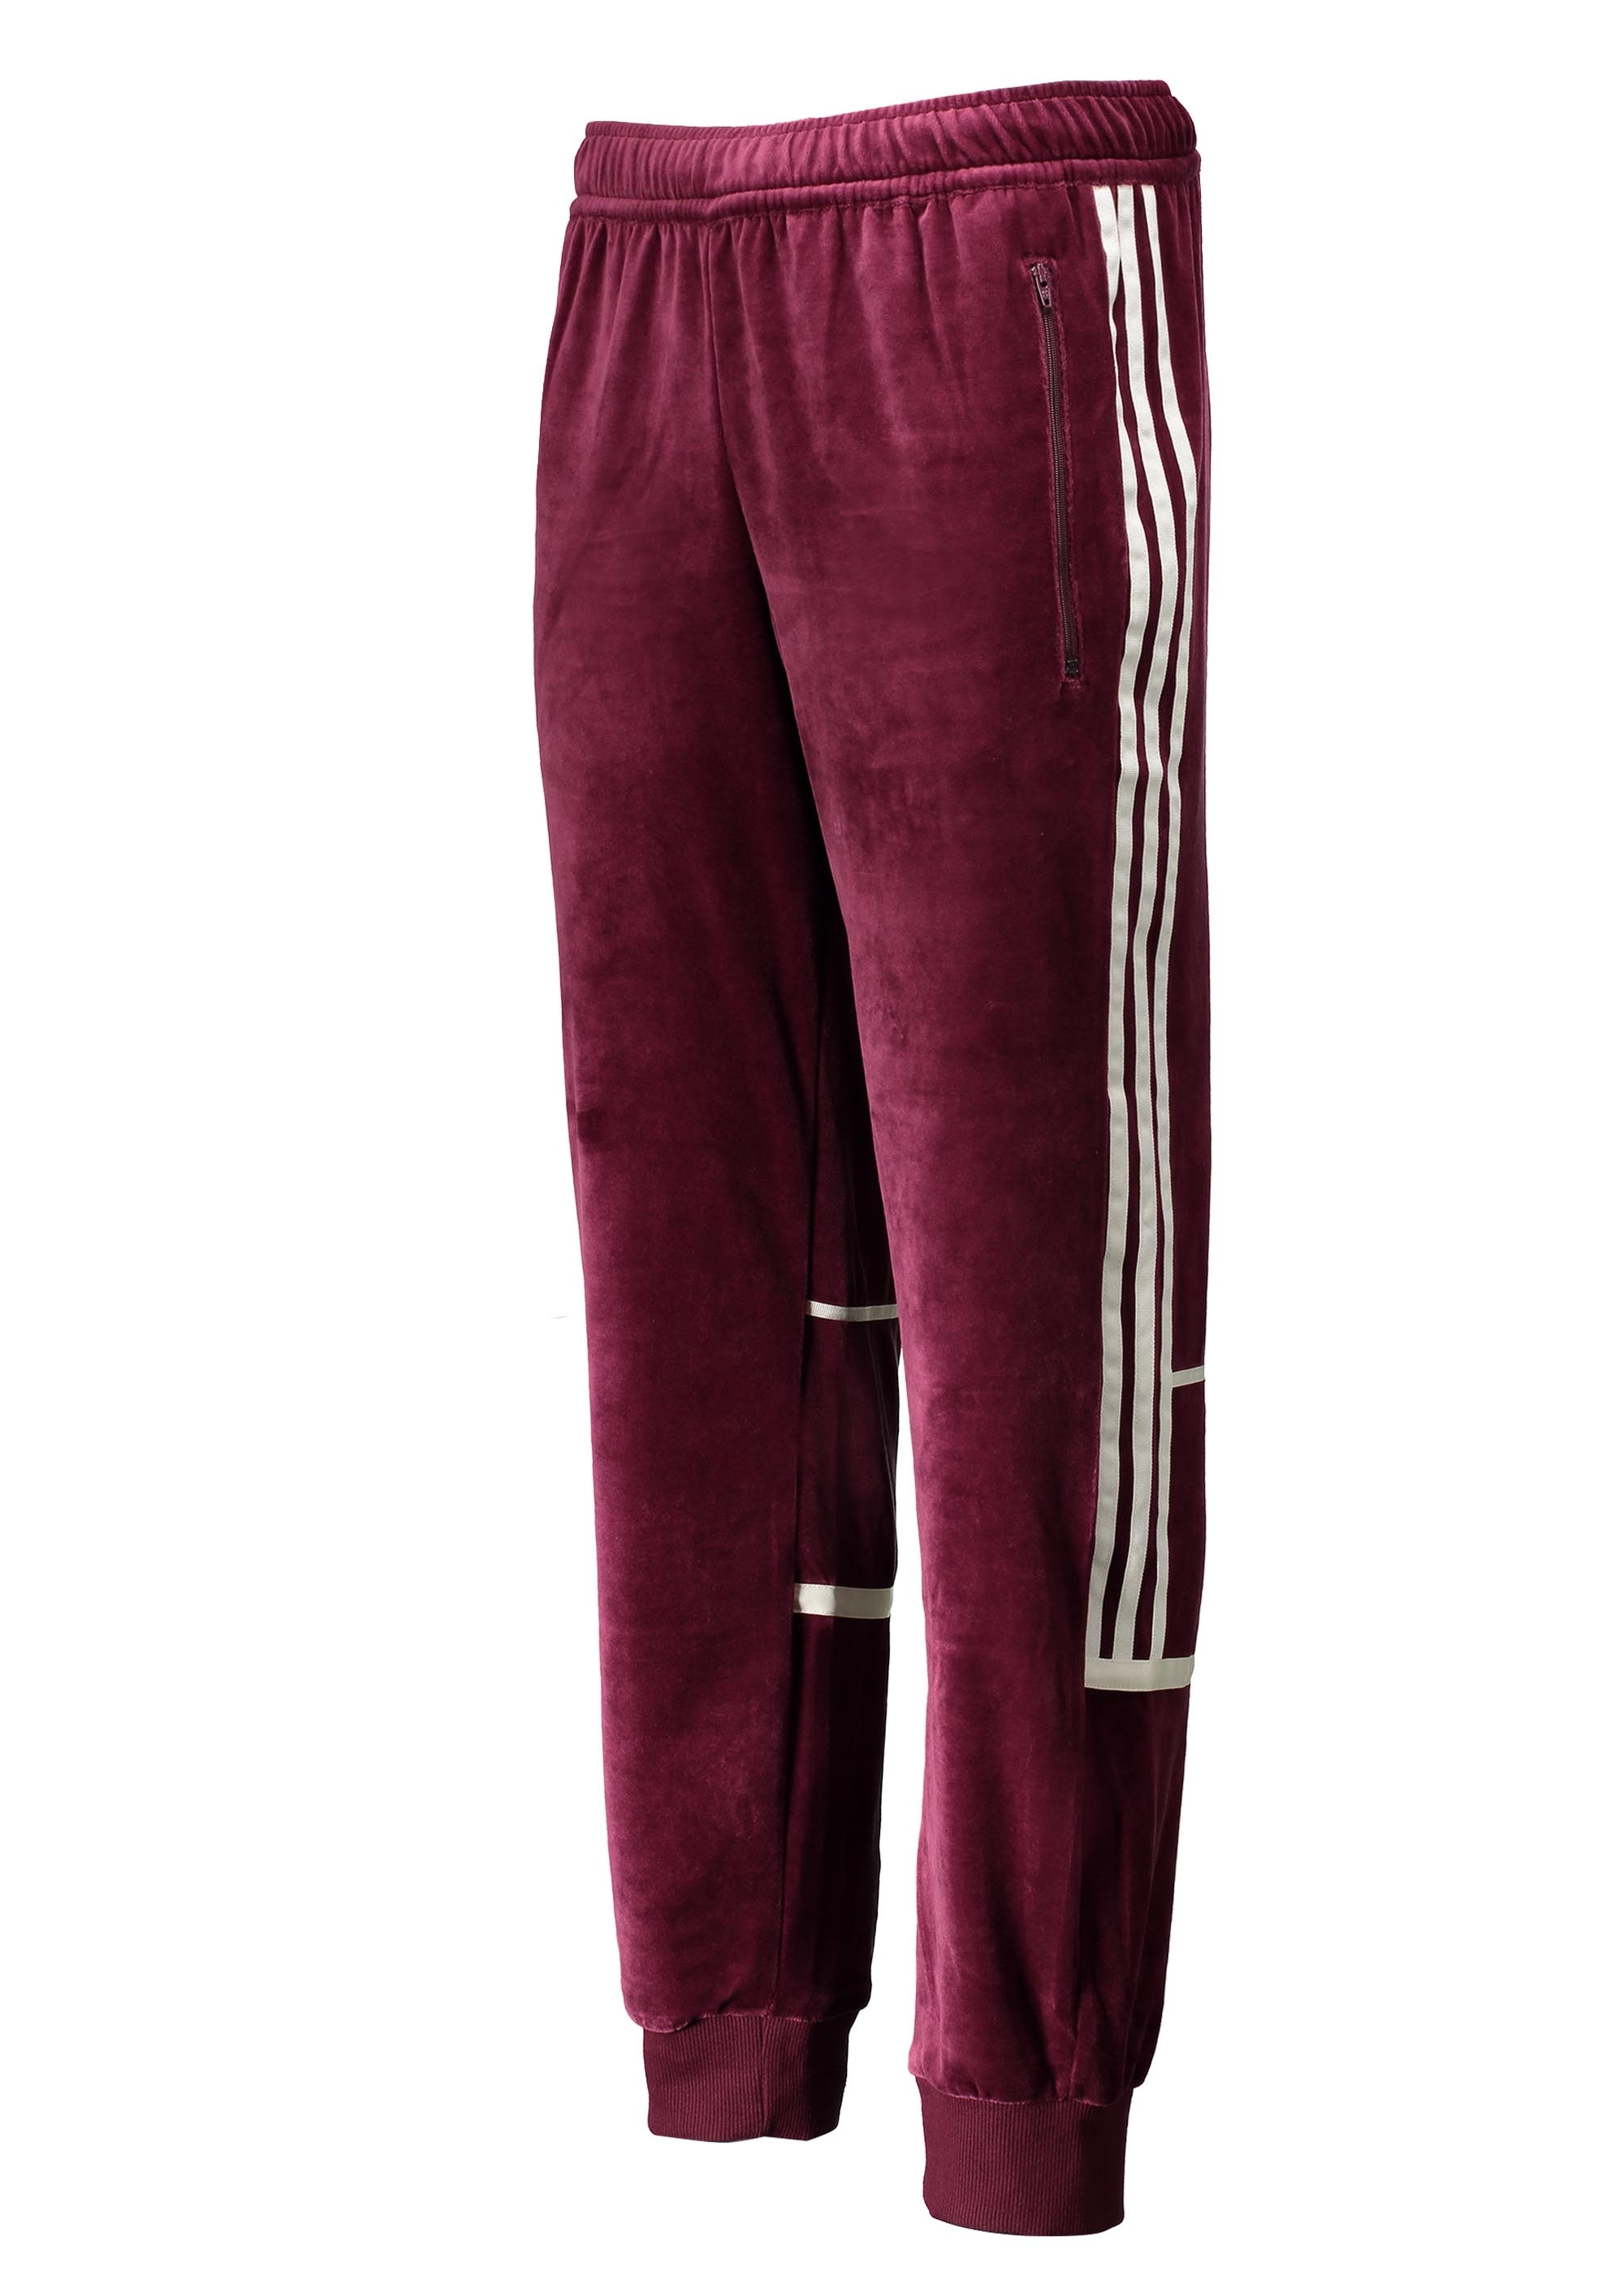 adidas Originals Apparel Challenger Velour Track Pant Maroon